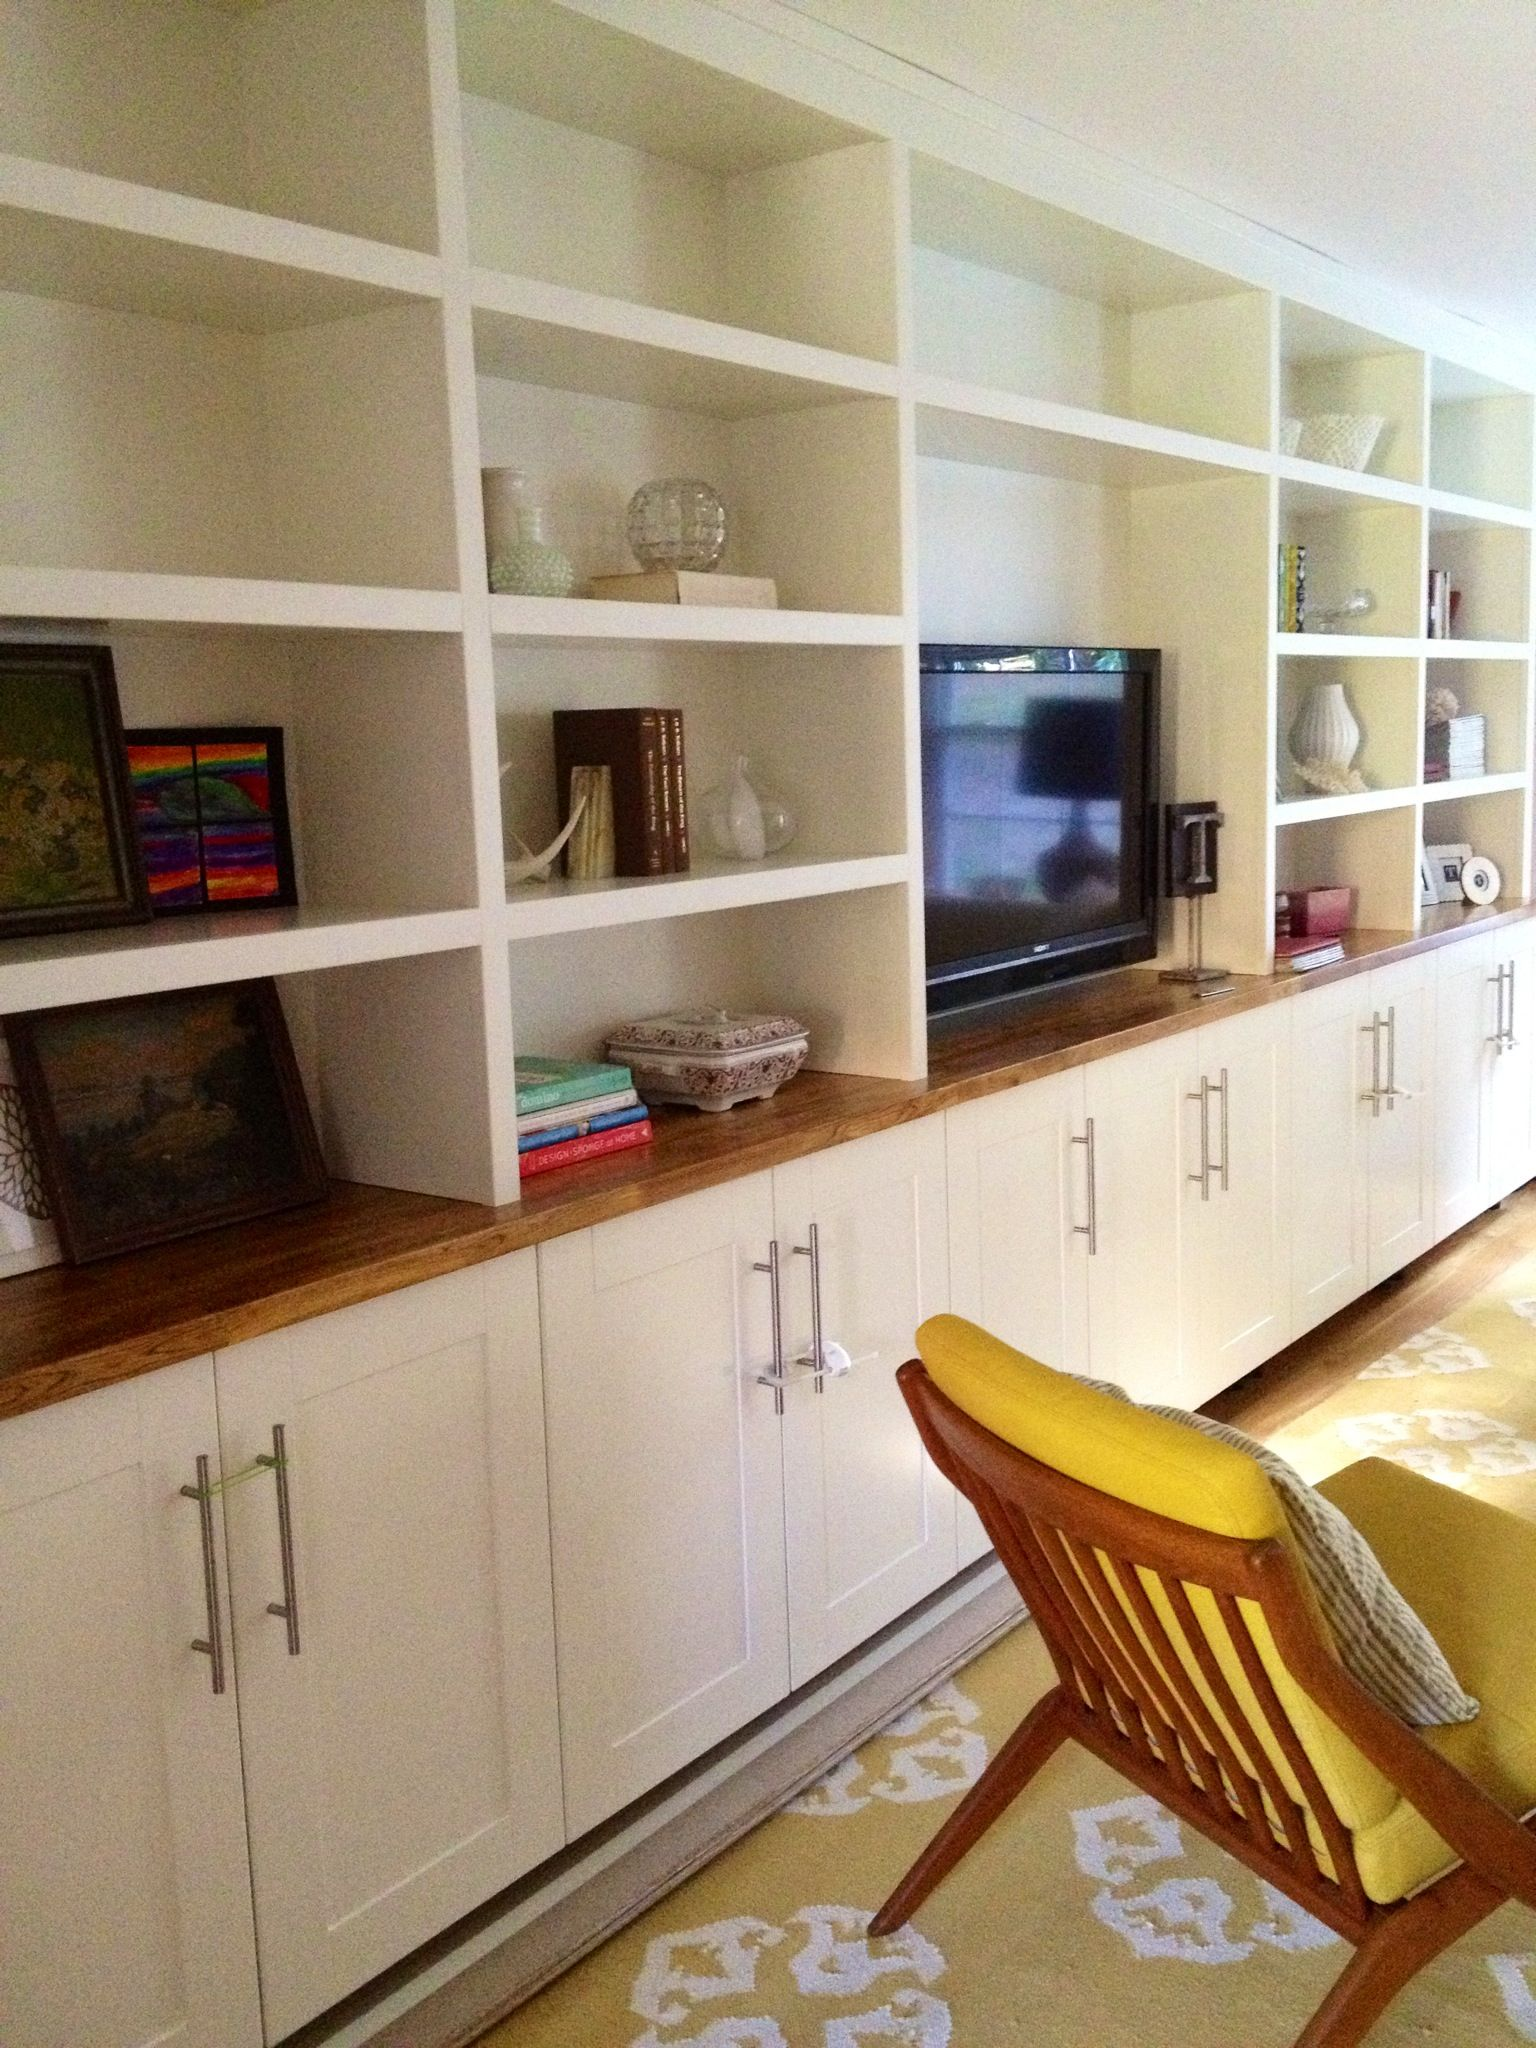 Builtins Ikea Adel Cabinets Below Custom Shelving On Top With -  living room built in cabinets